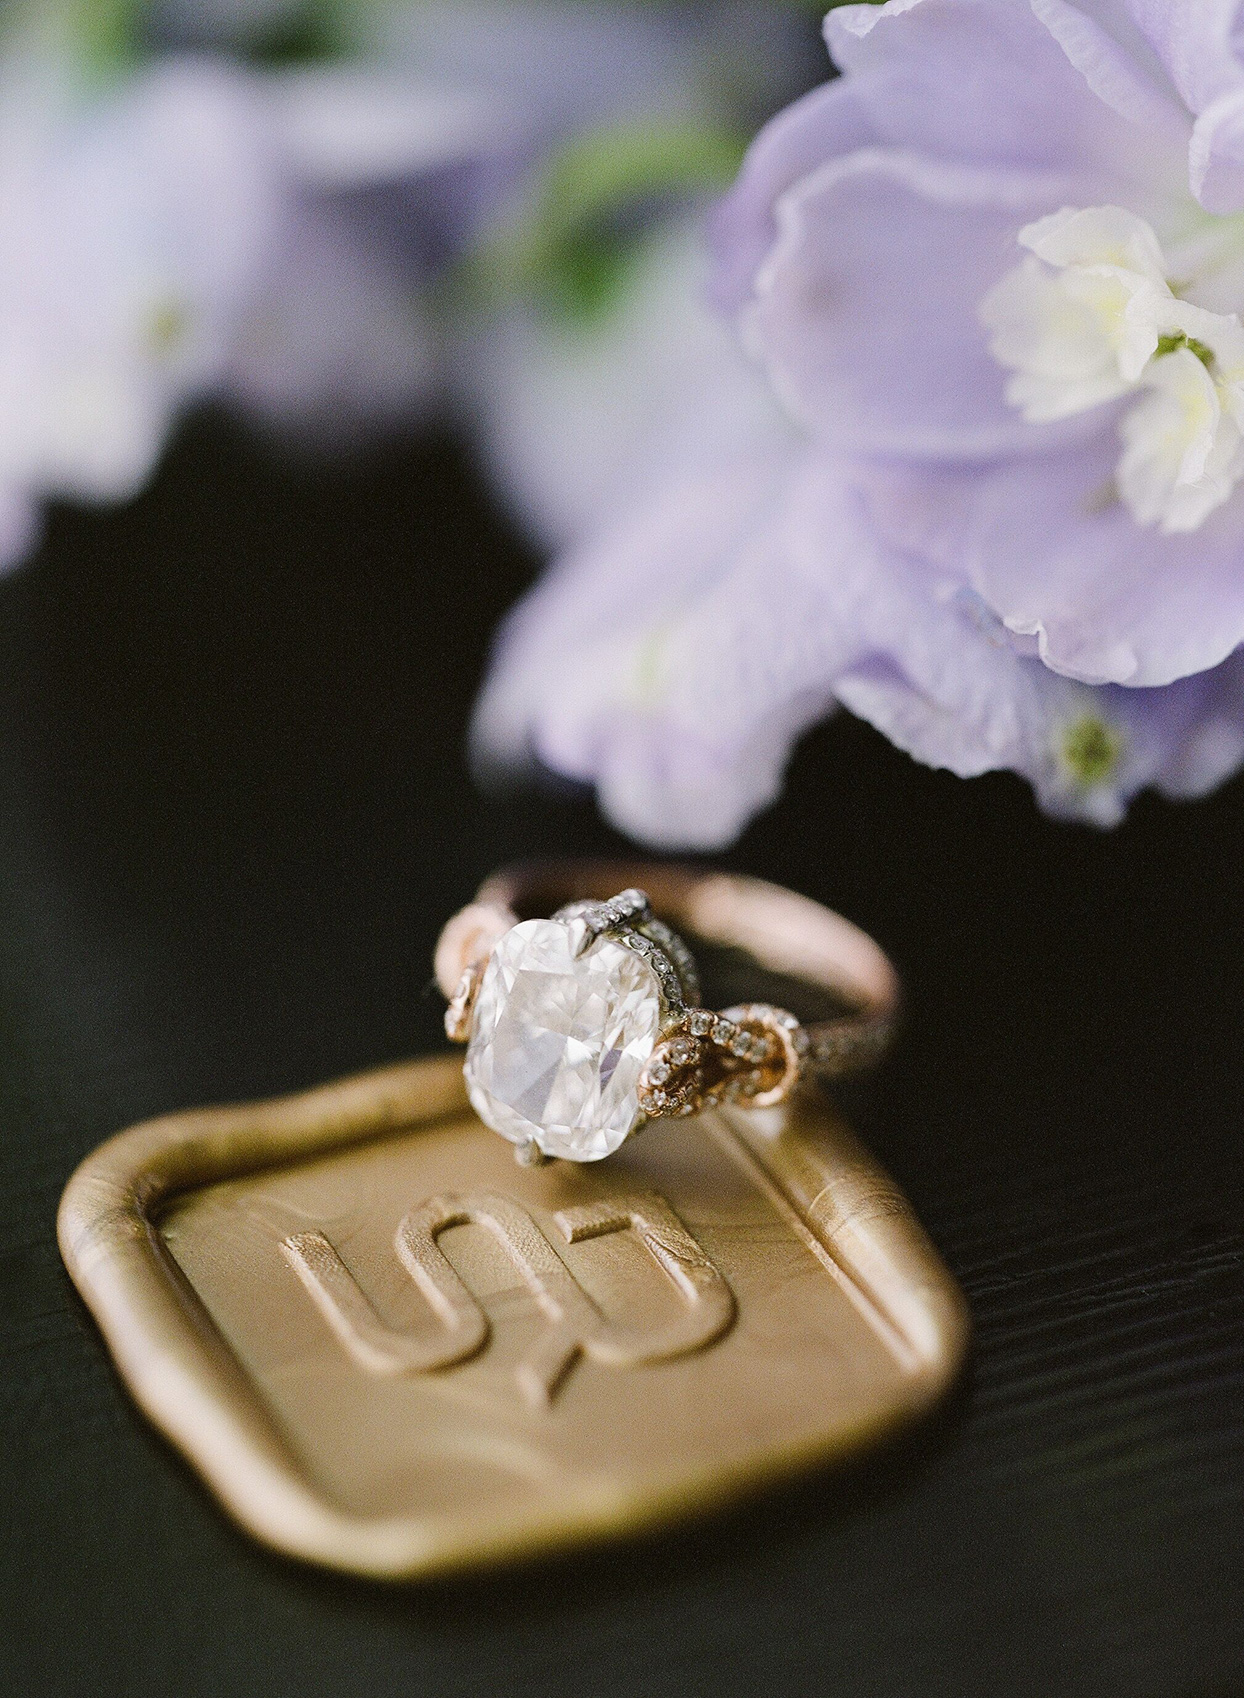 bride's engagement ring sitting on gold wax seal crest